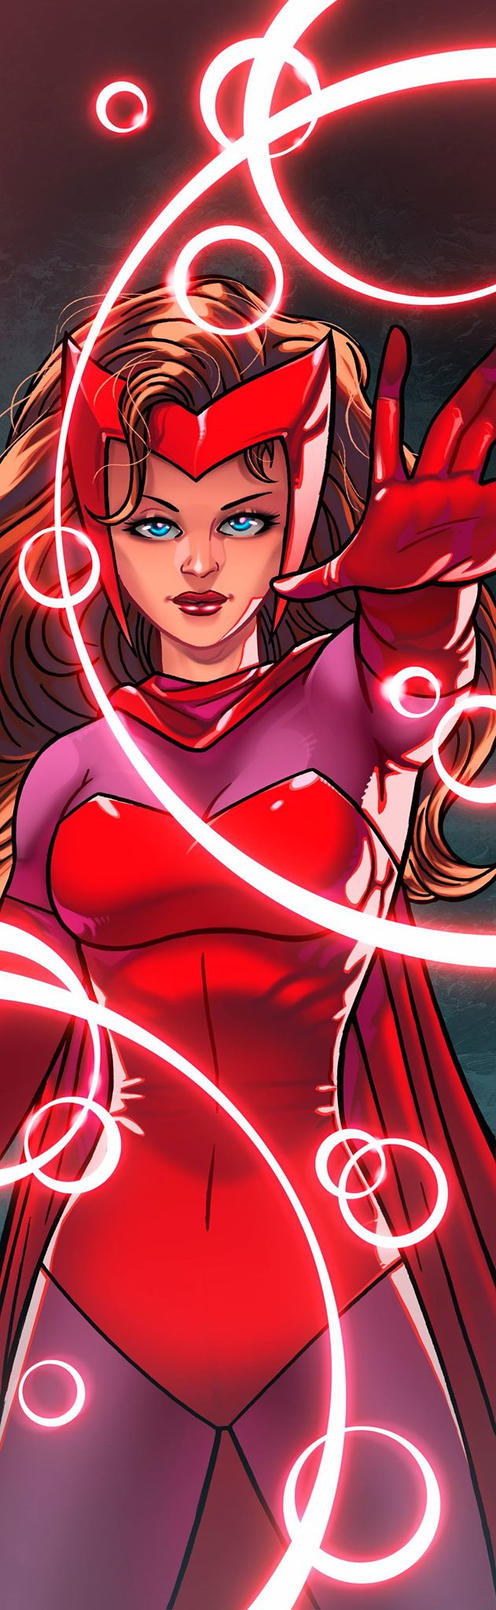 Scarlet Witch Panel Art by RichBernatovech